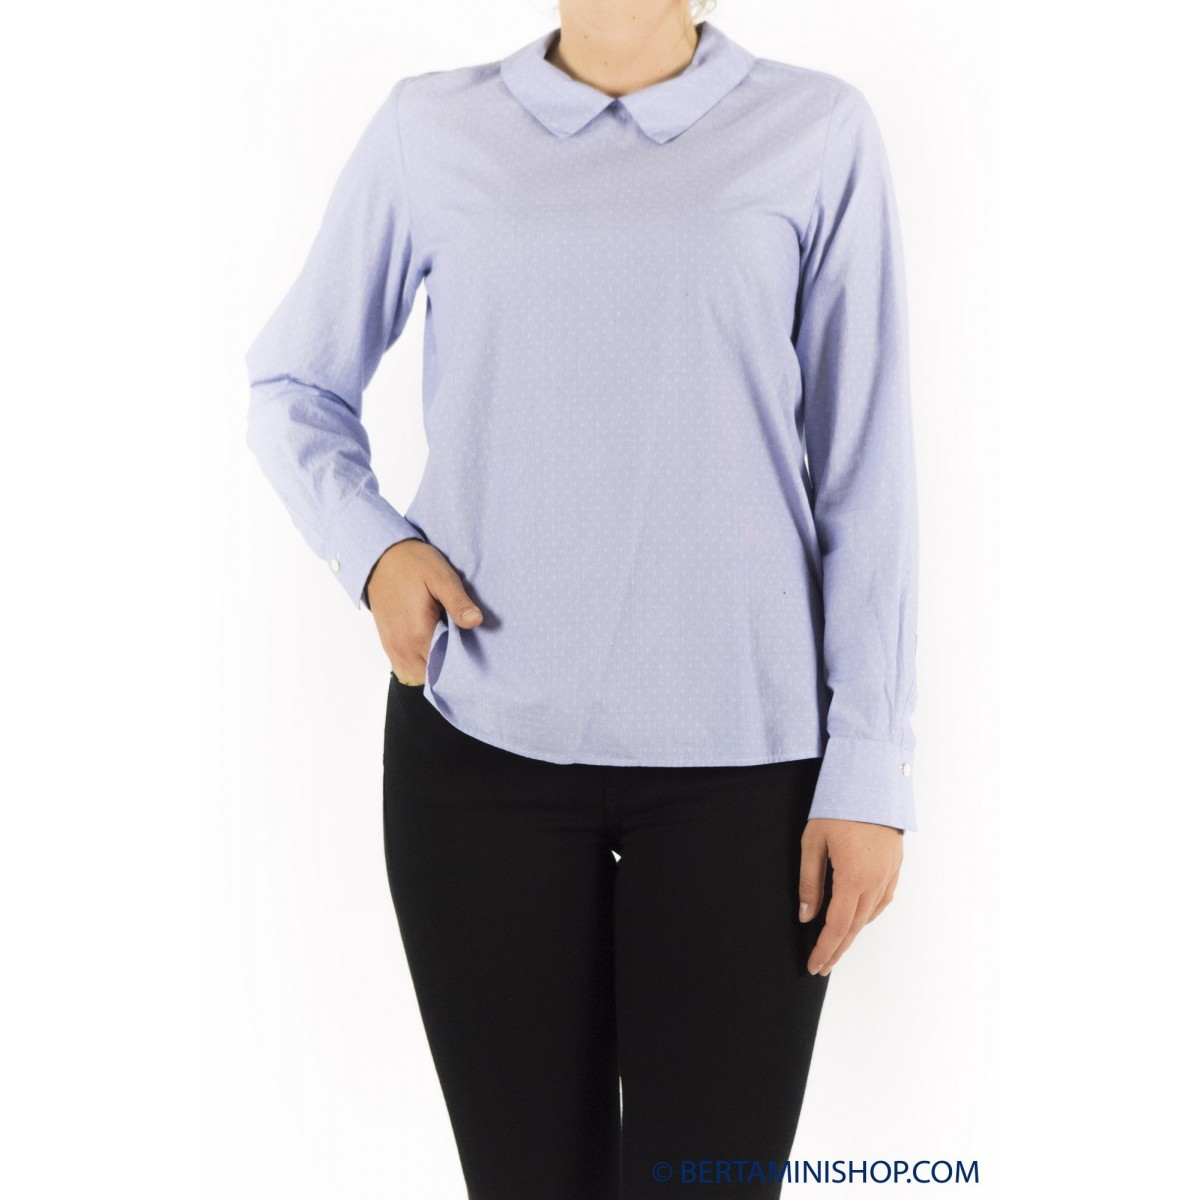 Blouse Glanshirt Red Woman - Blanch L6523 802- Azzurra puntino